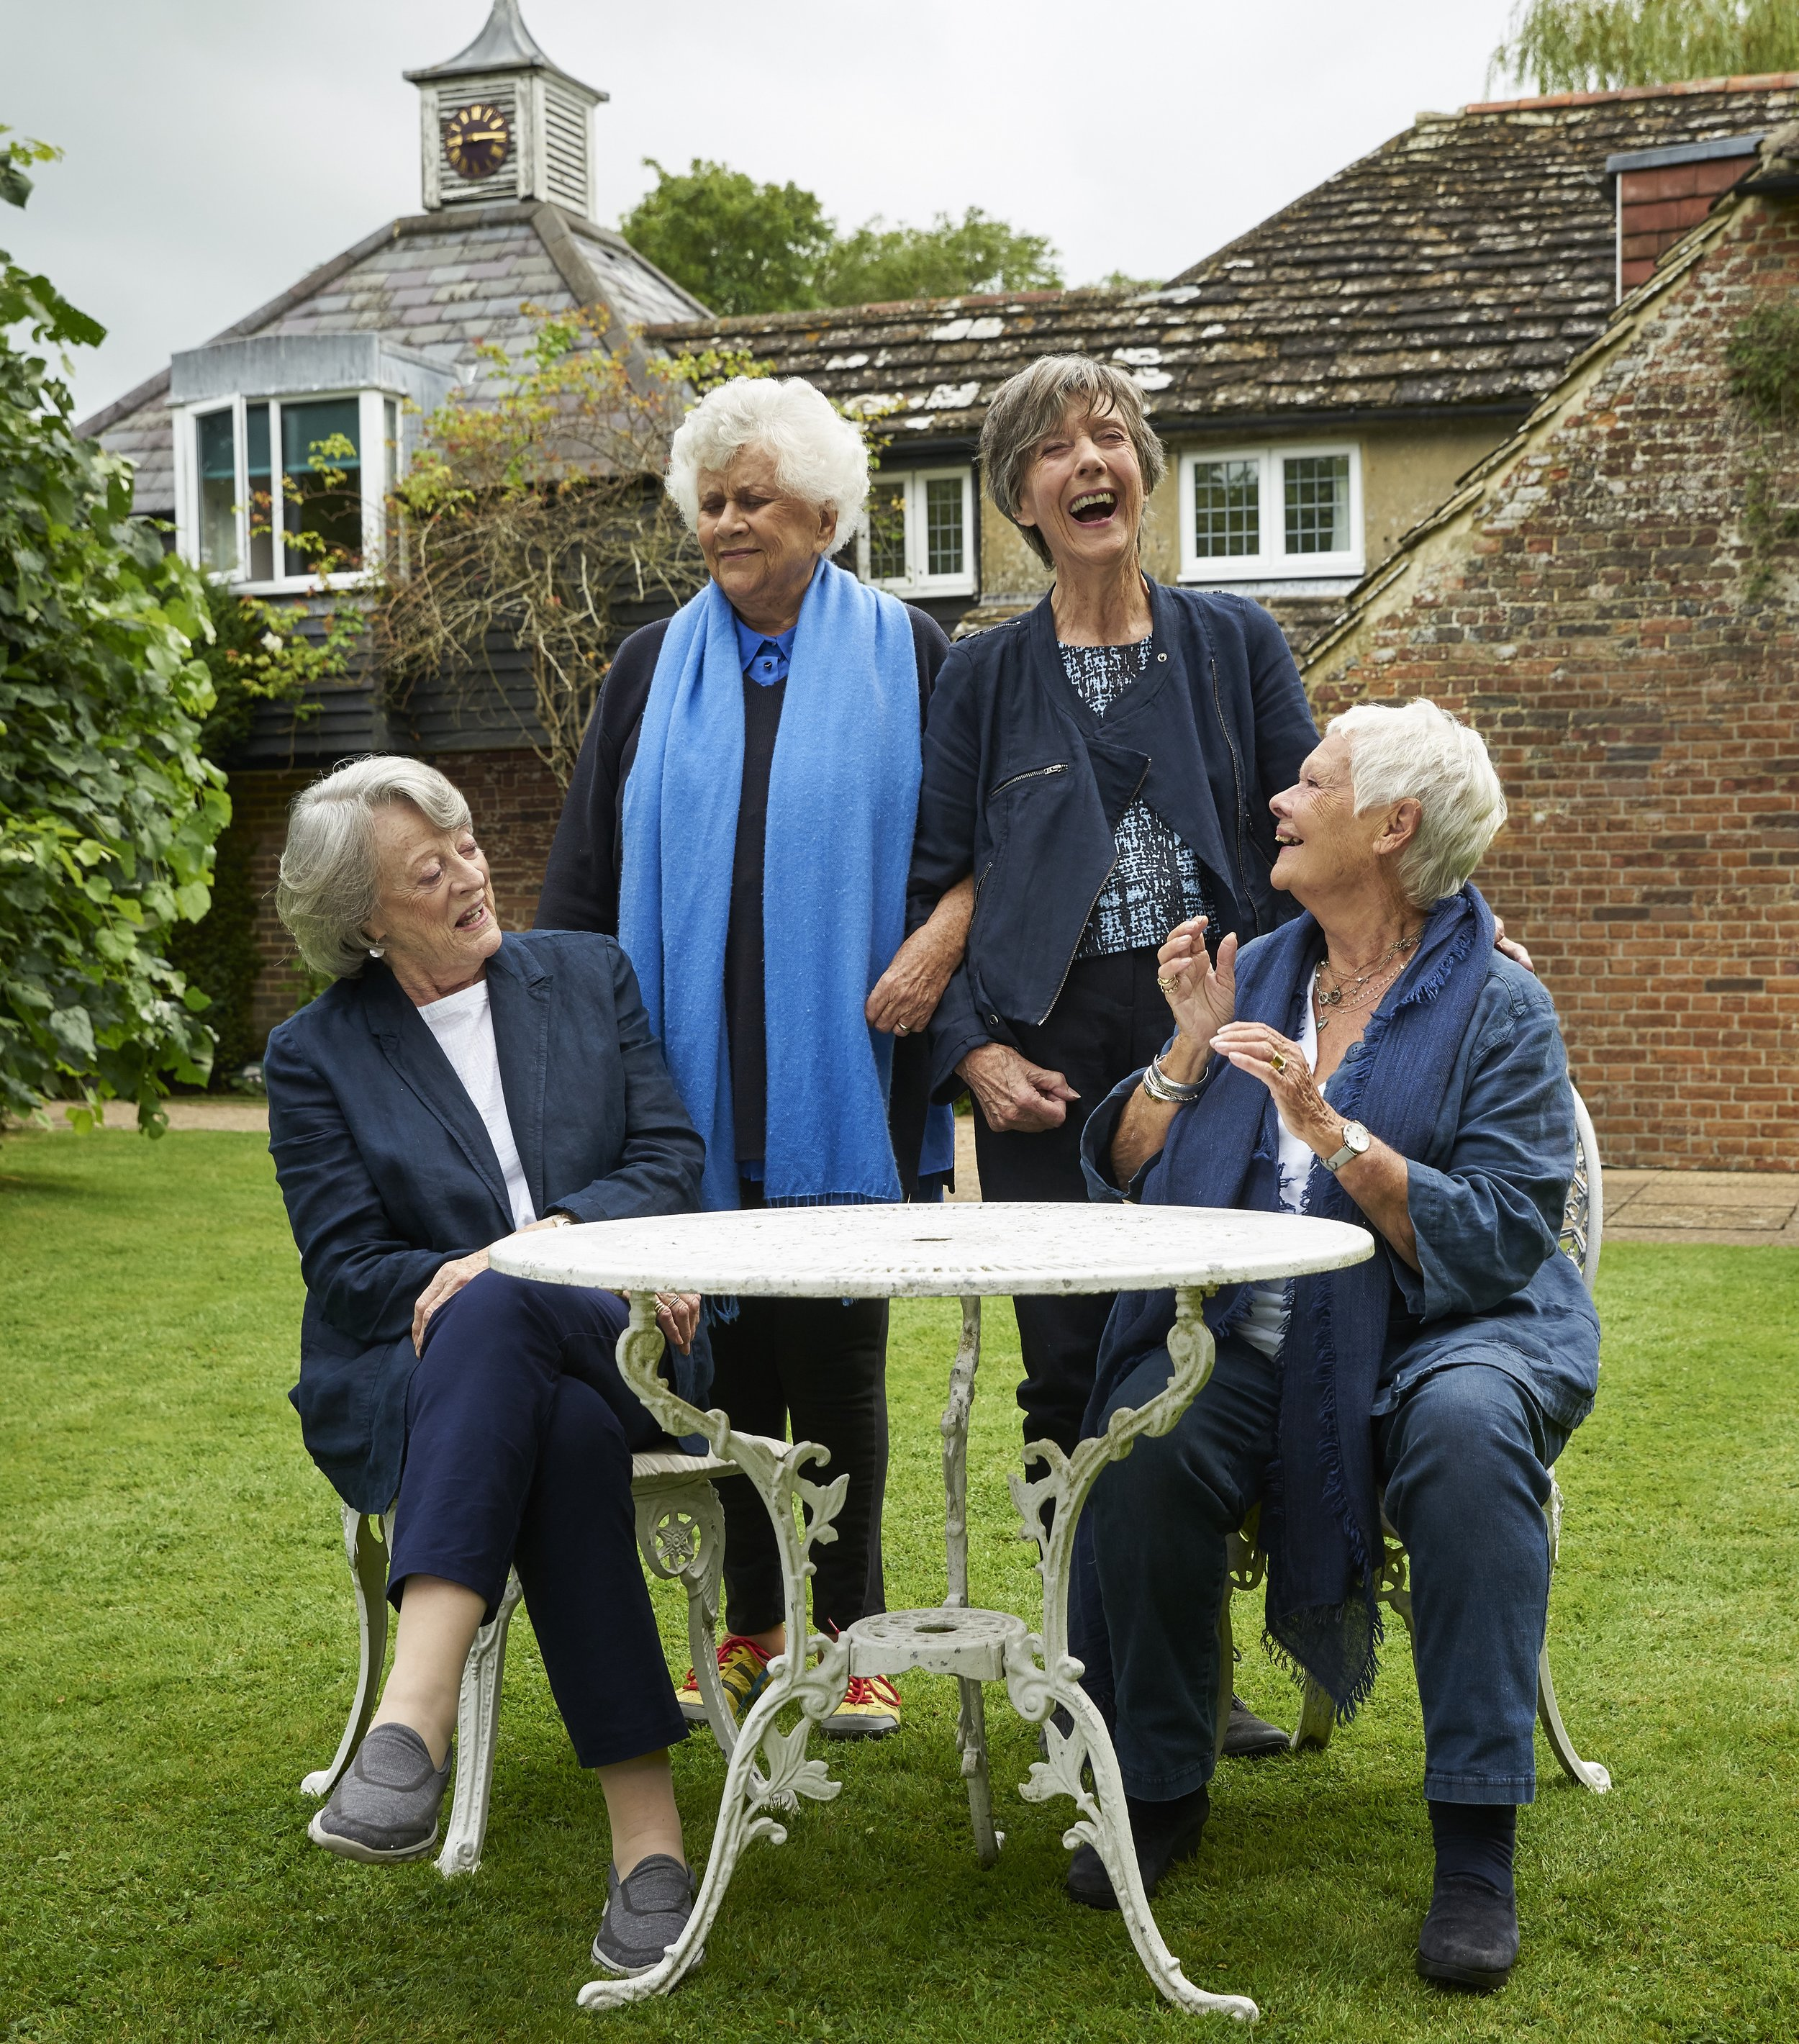 Dames Smith, Plowright, Atkins and Dench in Nothing Like A Dame